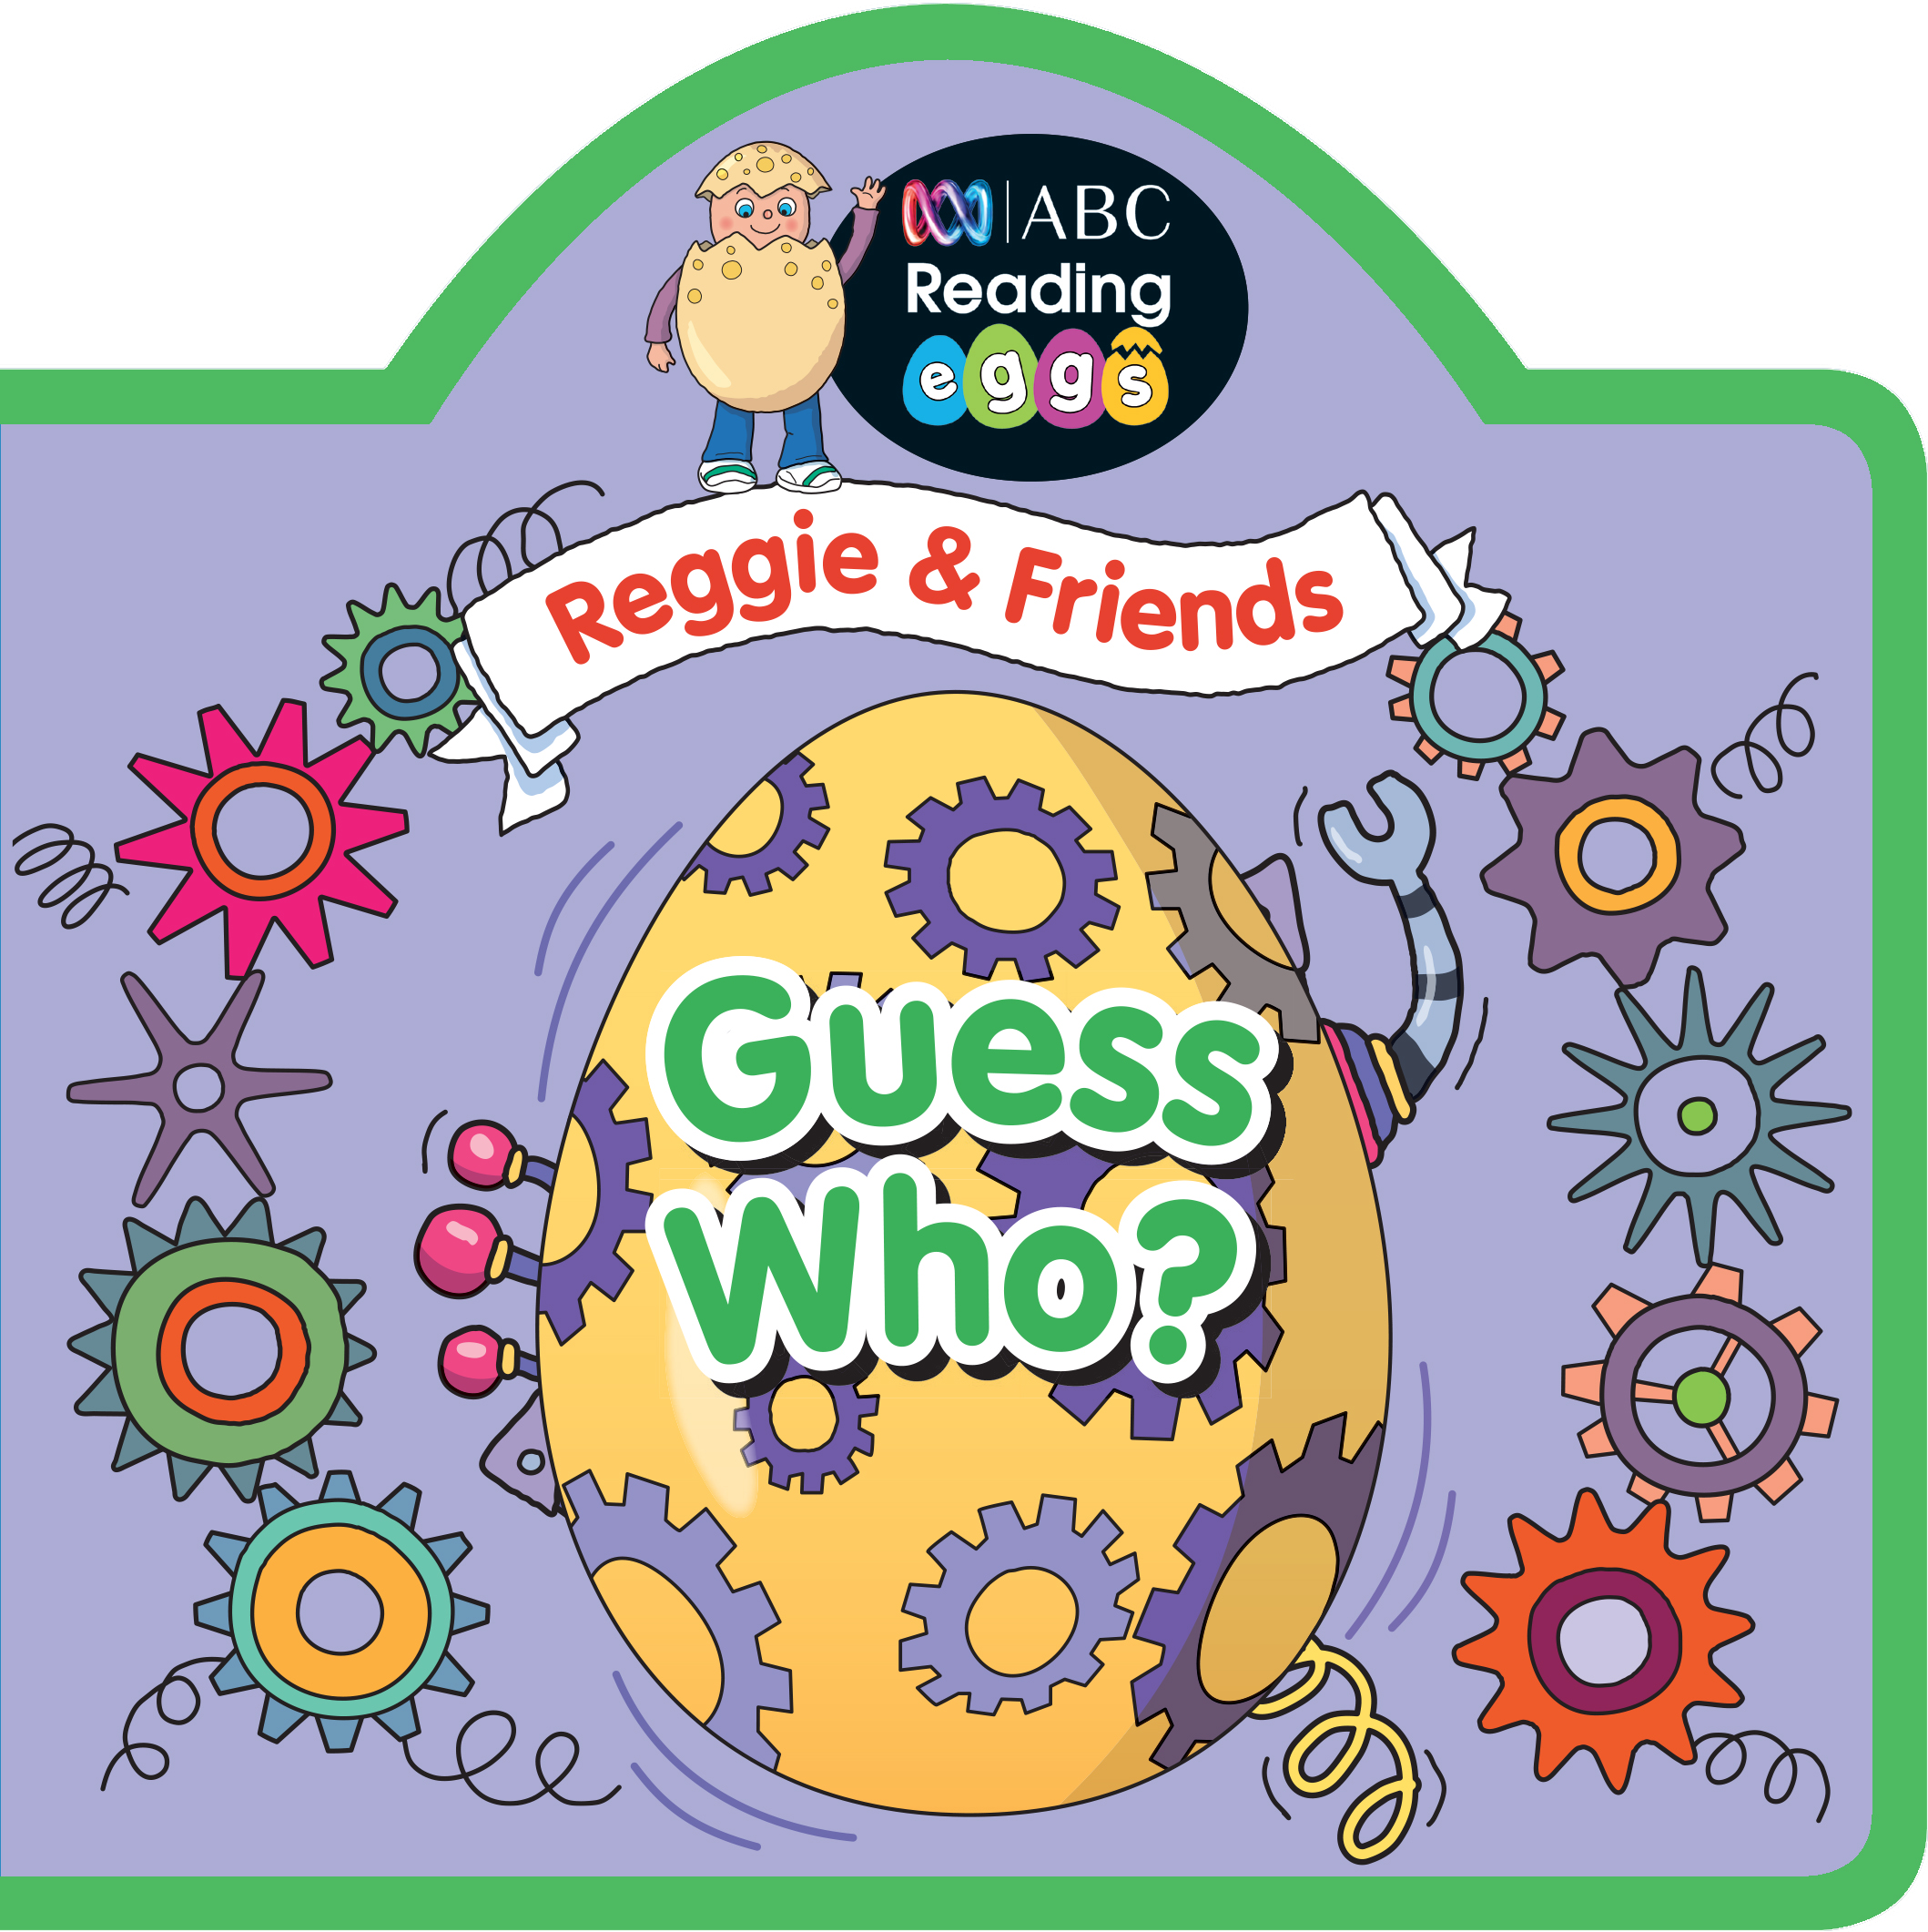 ABC Reading Eggs Puzzle Book - Reggie & Friends Guess Who?